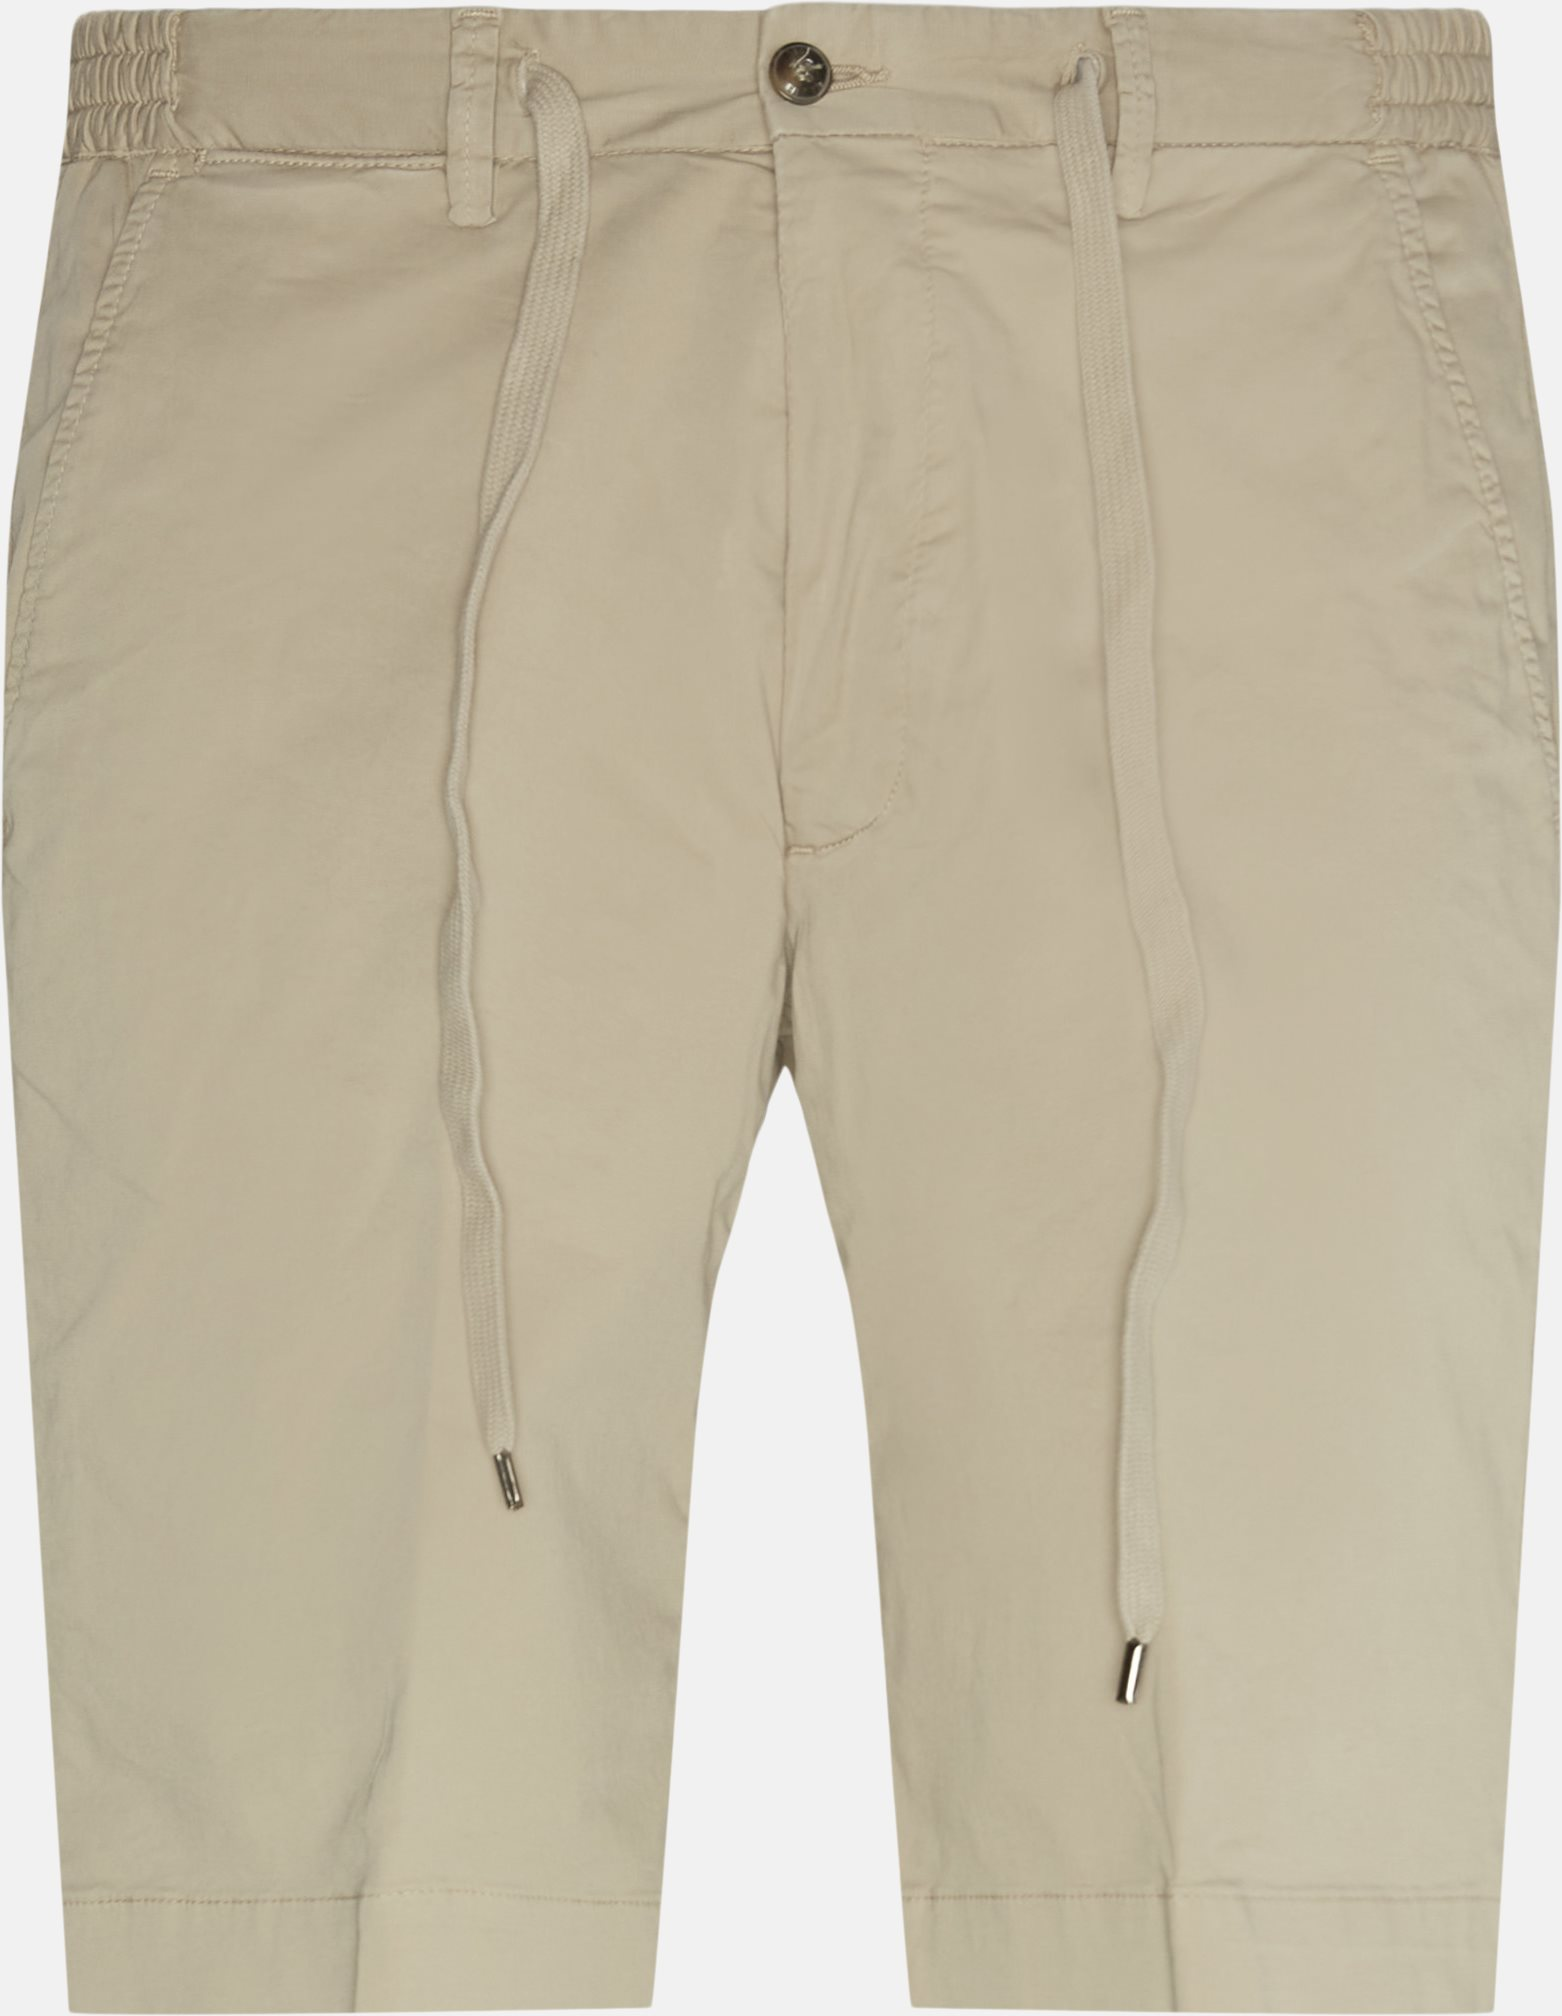 Malibu Shorts - Shorts - Regular - Sand